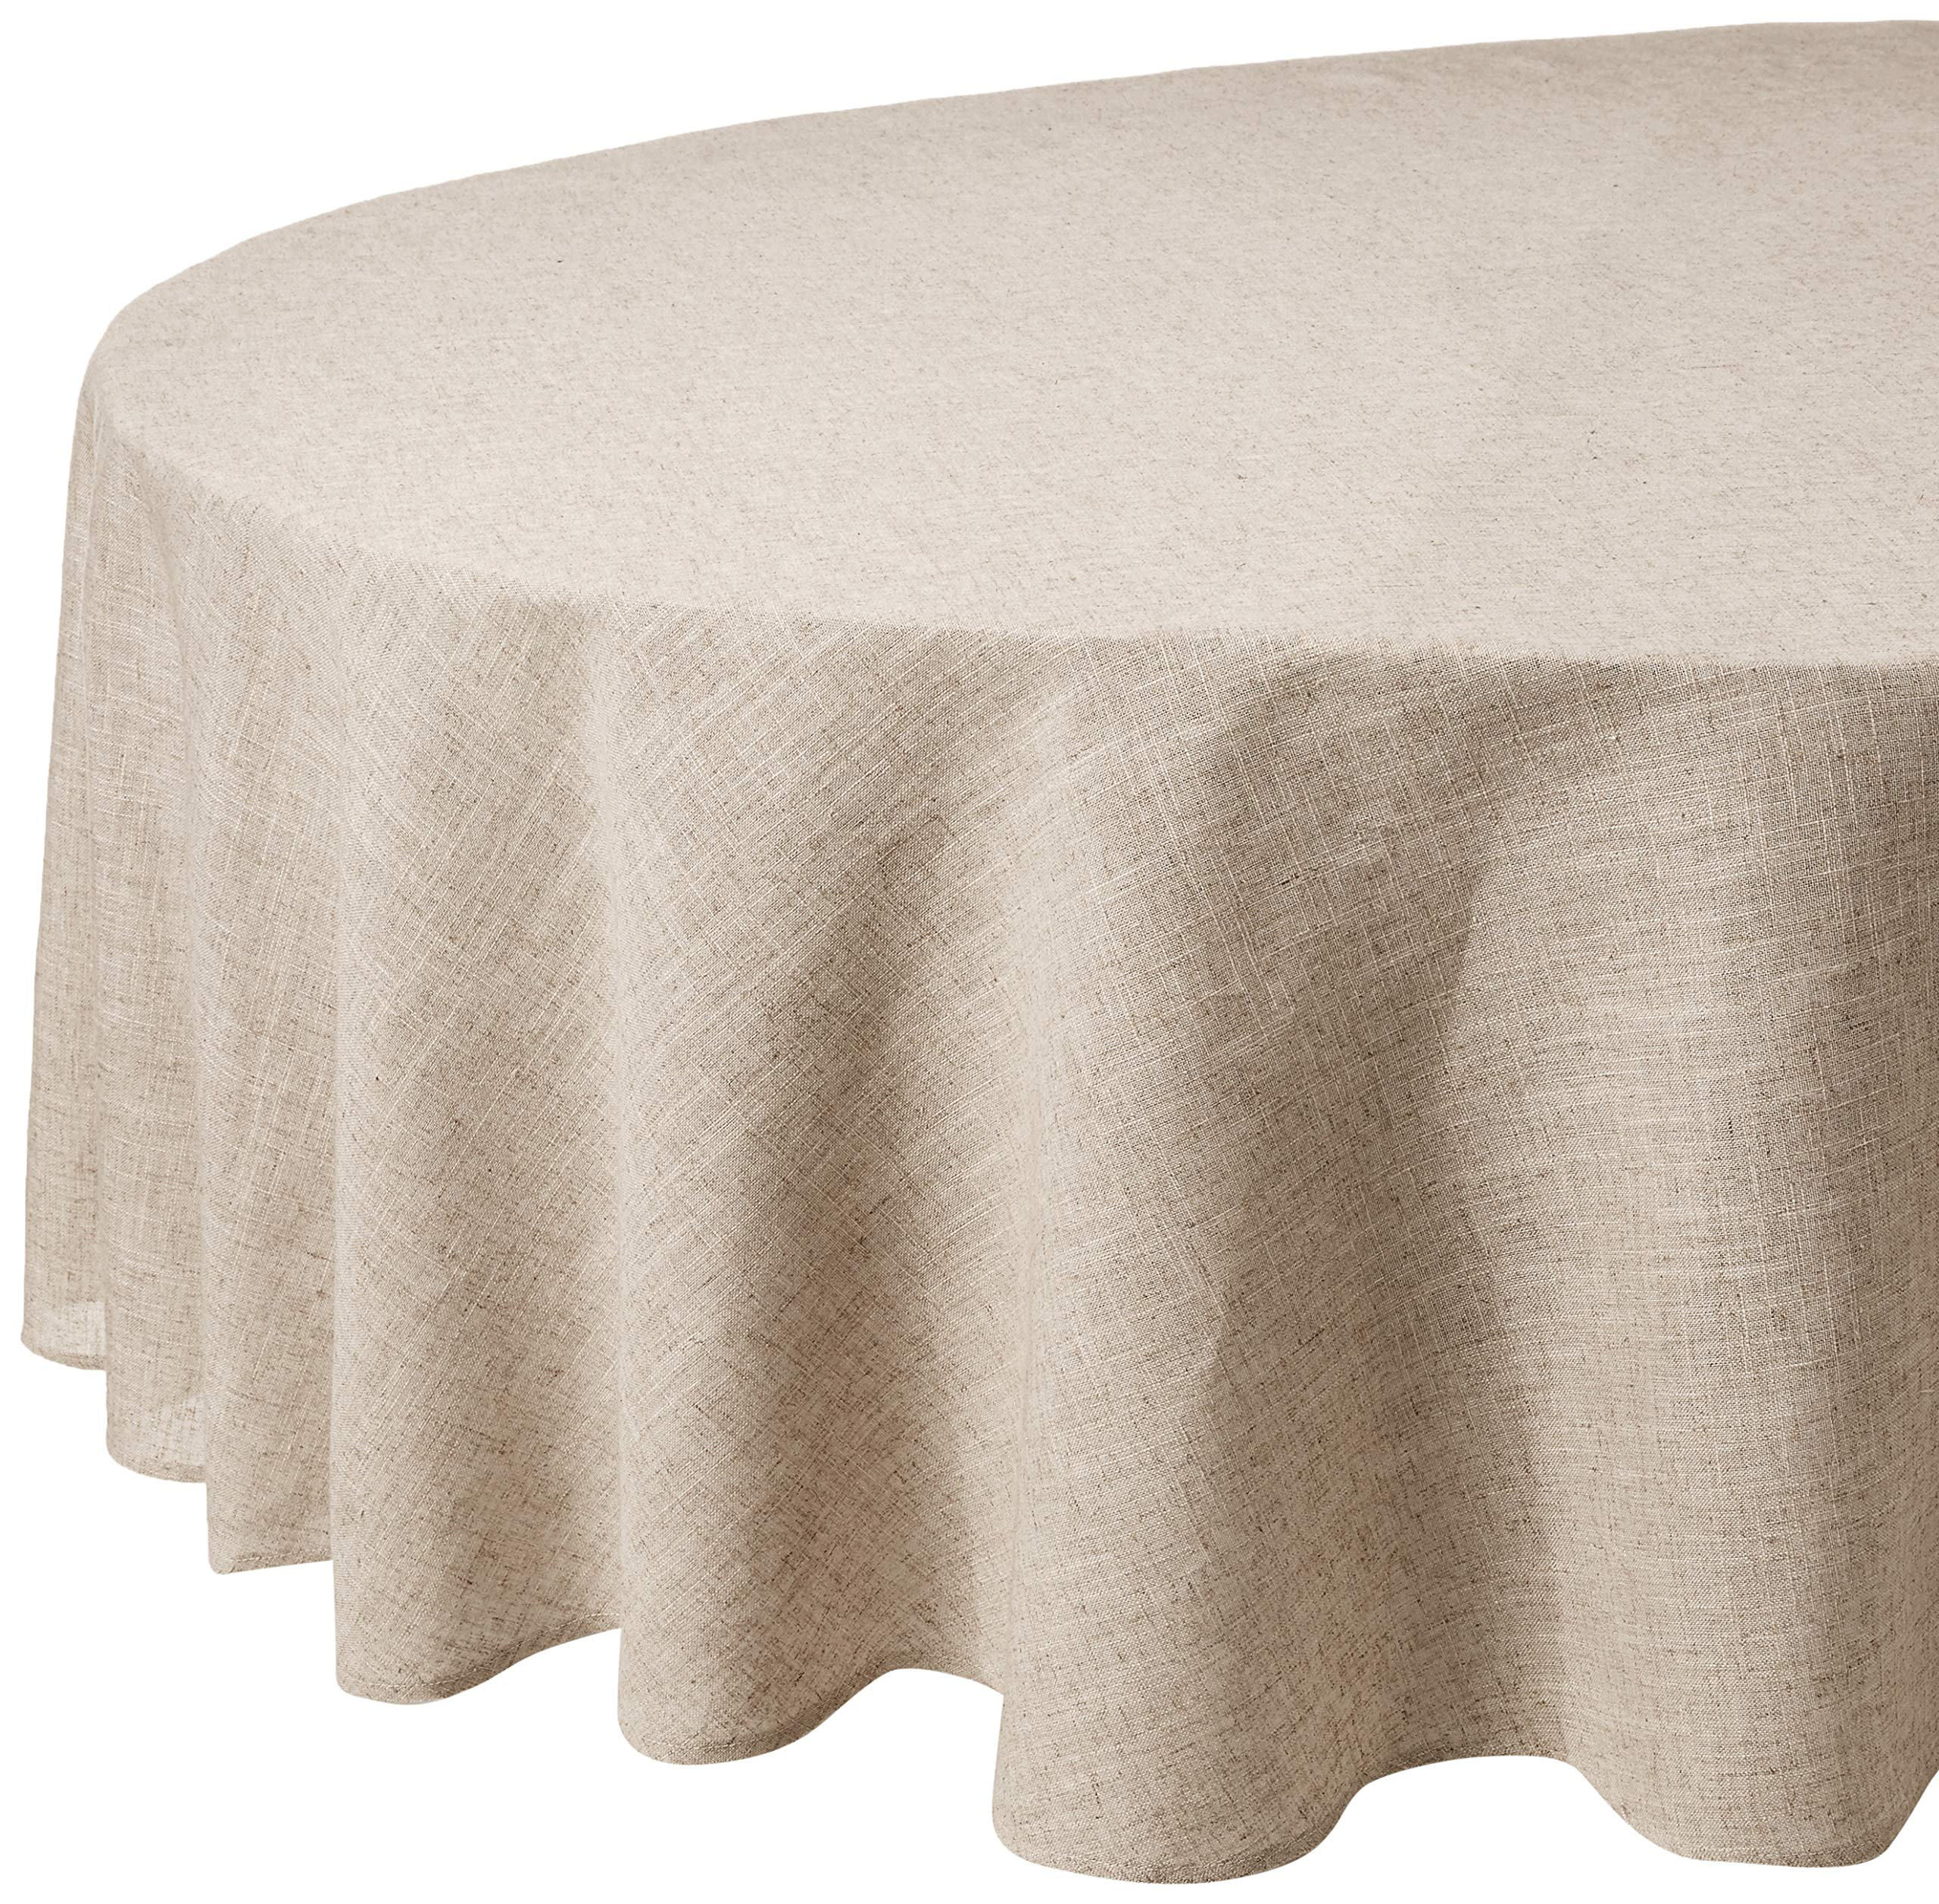 SARO LIFESTYLE 731 Toscana Tablecloths, 90-Inch, Round, Natural